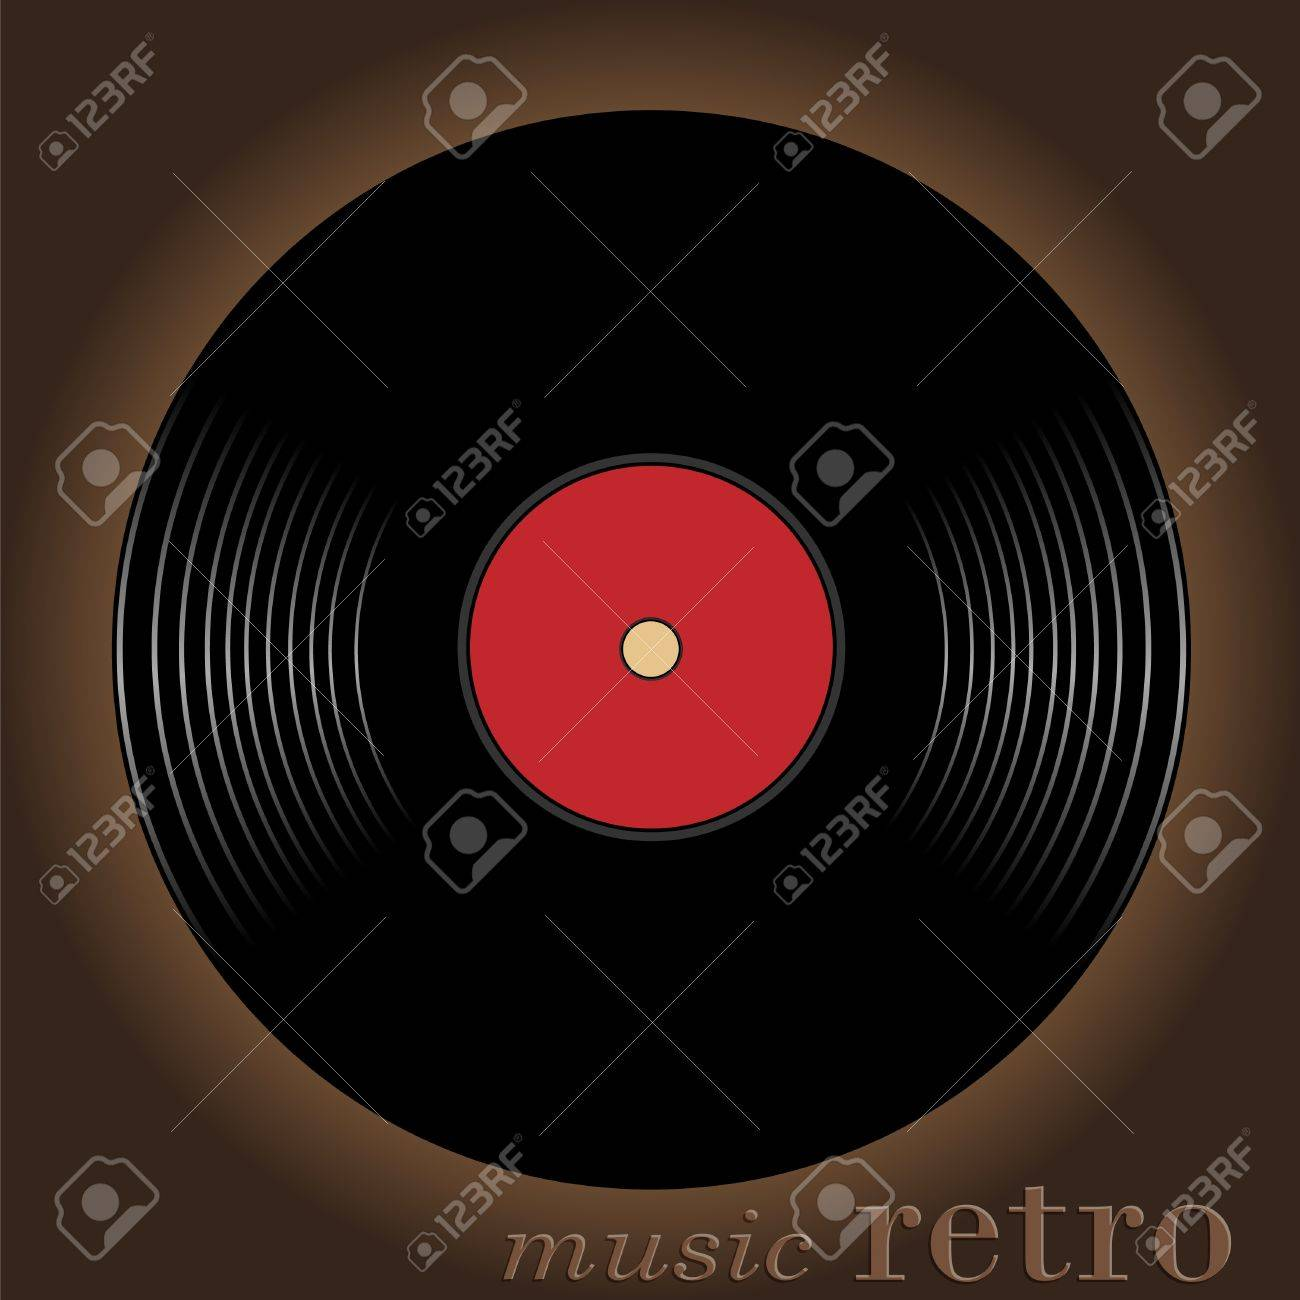 Old musical disk located against a dark background Stock Photo - 9286333